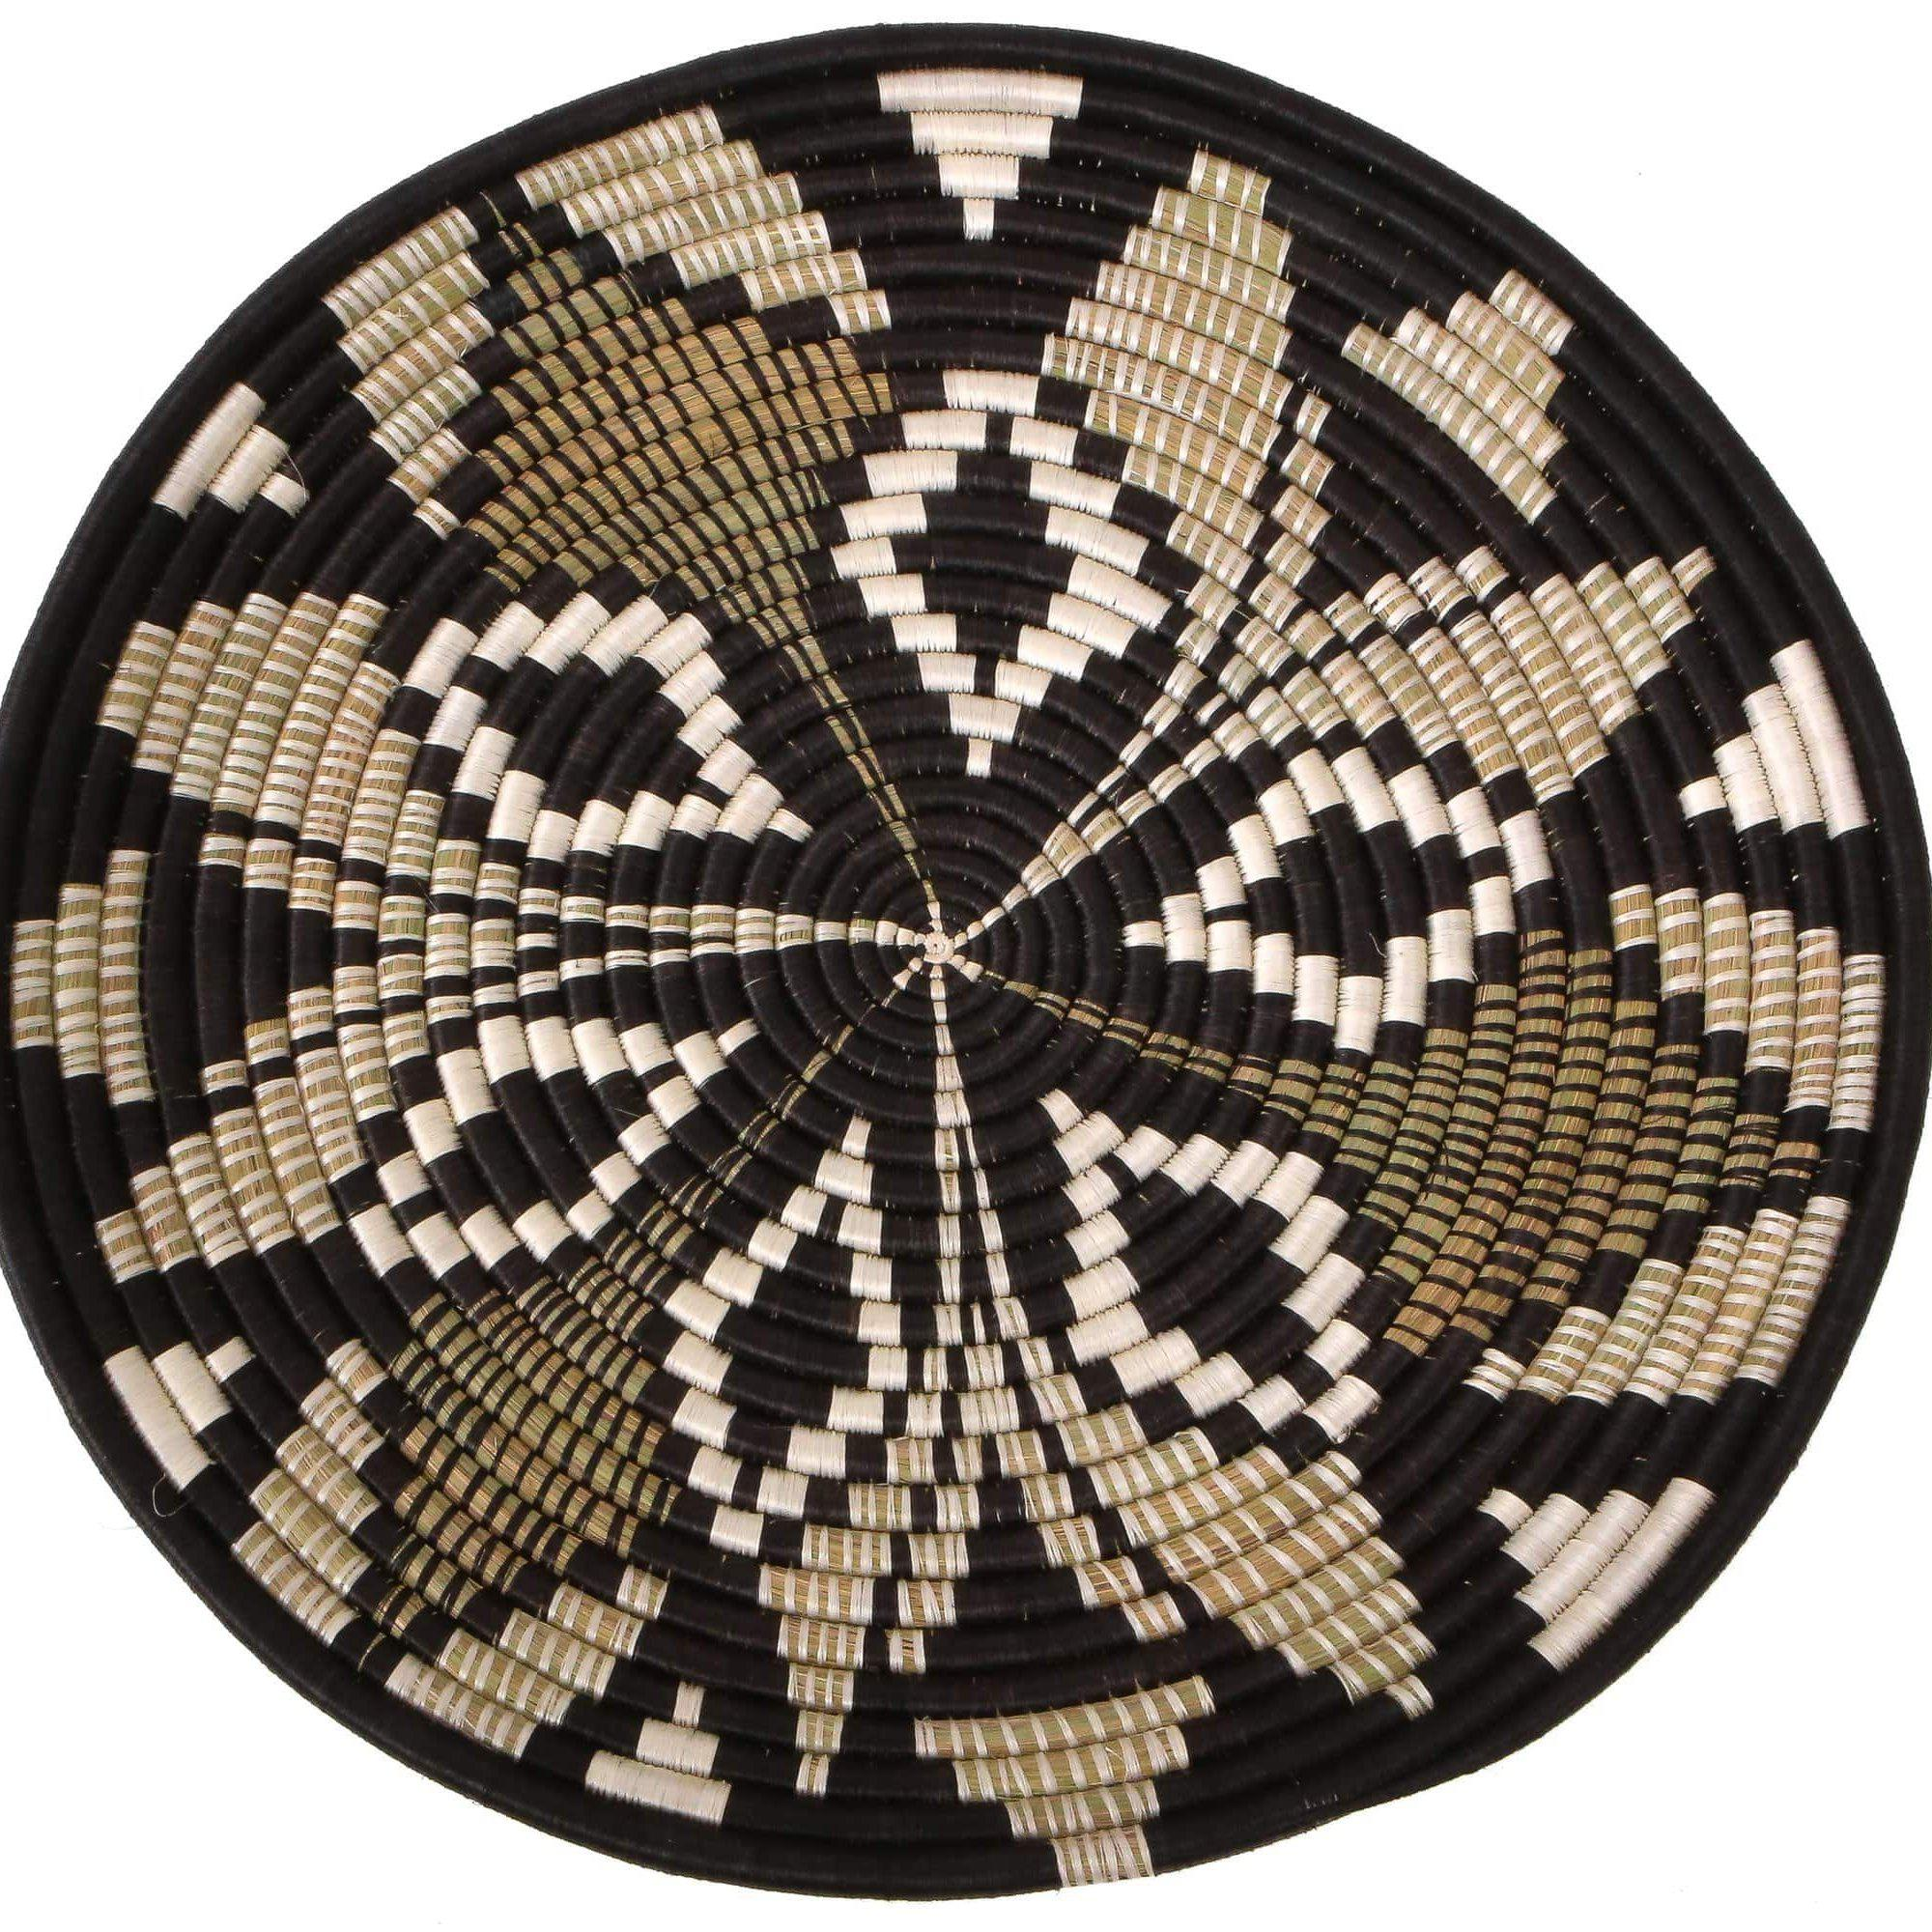 Tilda Woven Black Wall Art Plate | woven wall baskets | rattan wall decor | decorative plate | boho wall decor | plate decor | wall decor | wall art | home decor